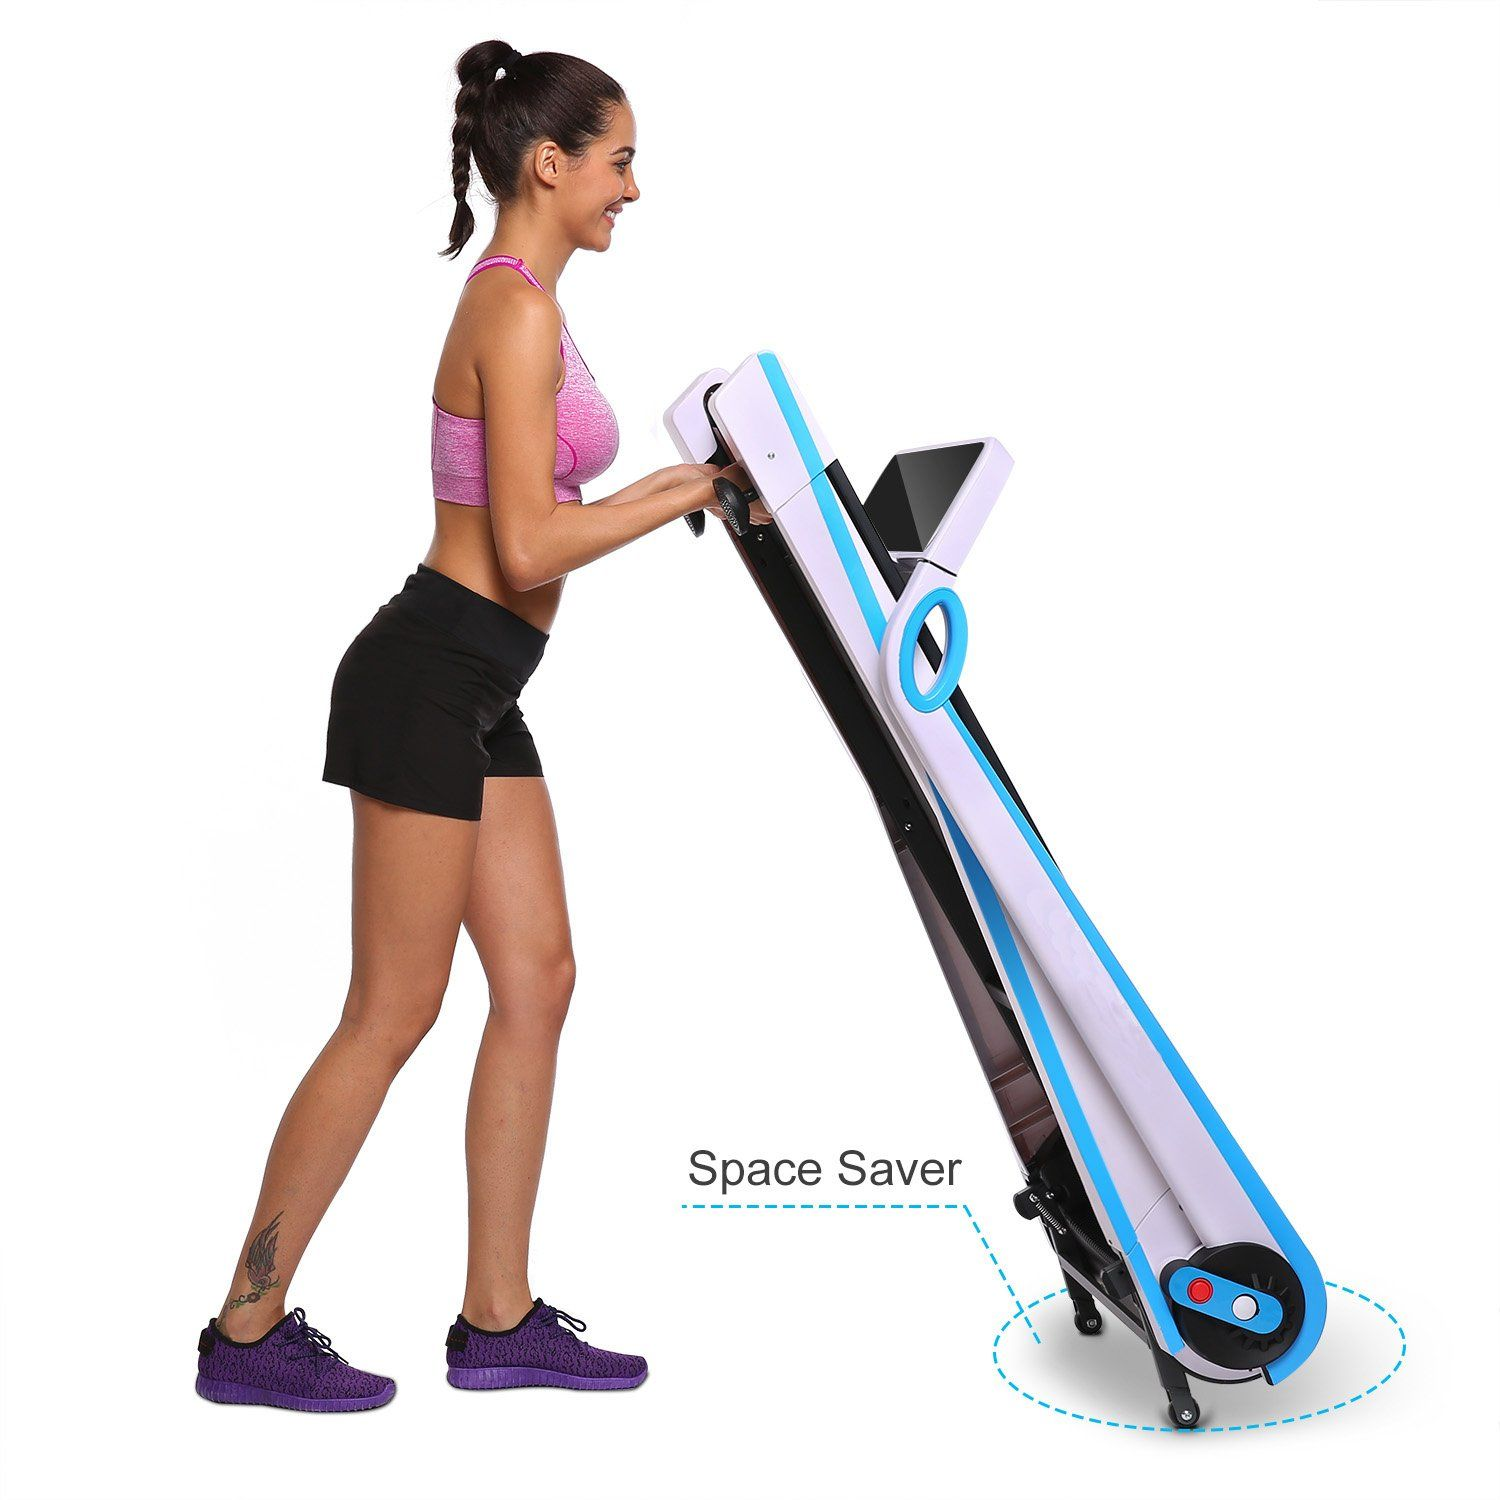 Moroly Fitness Folding Electric Treadmill Exercise